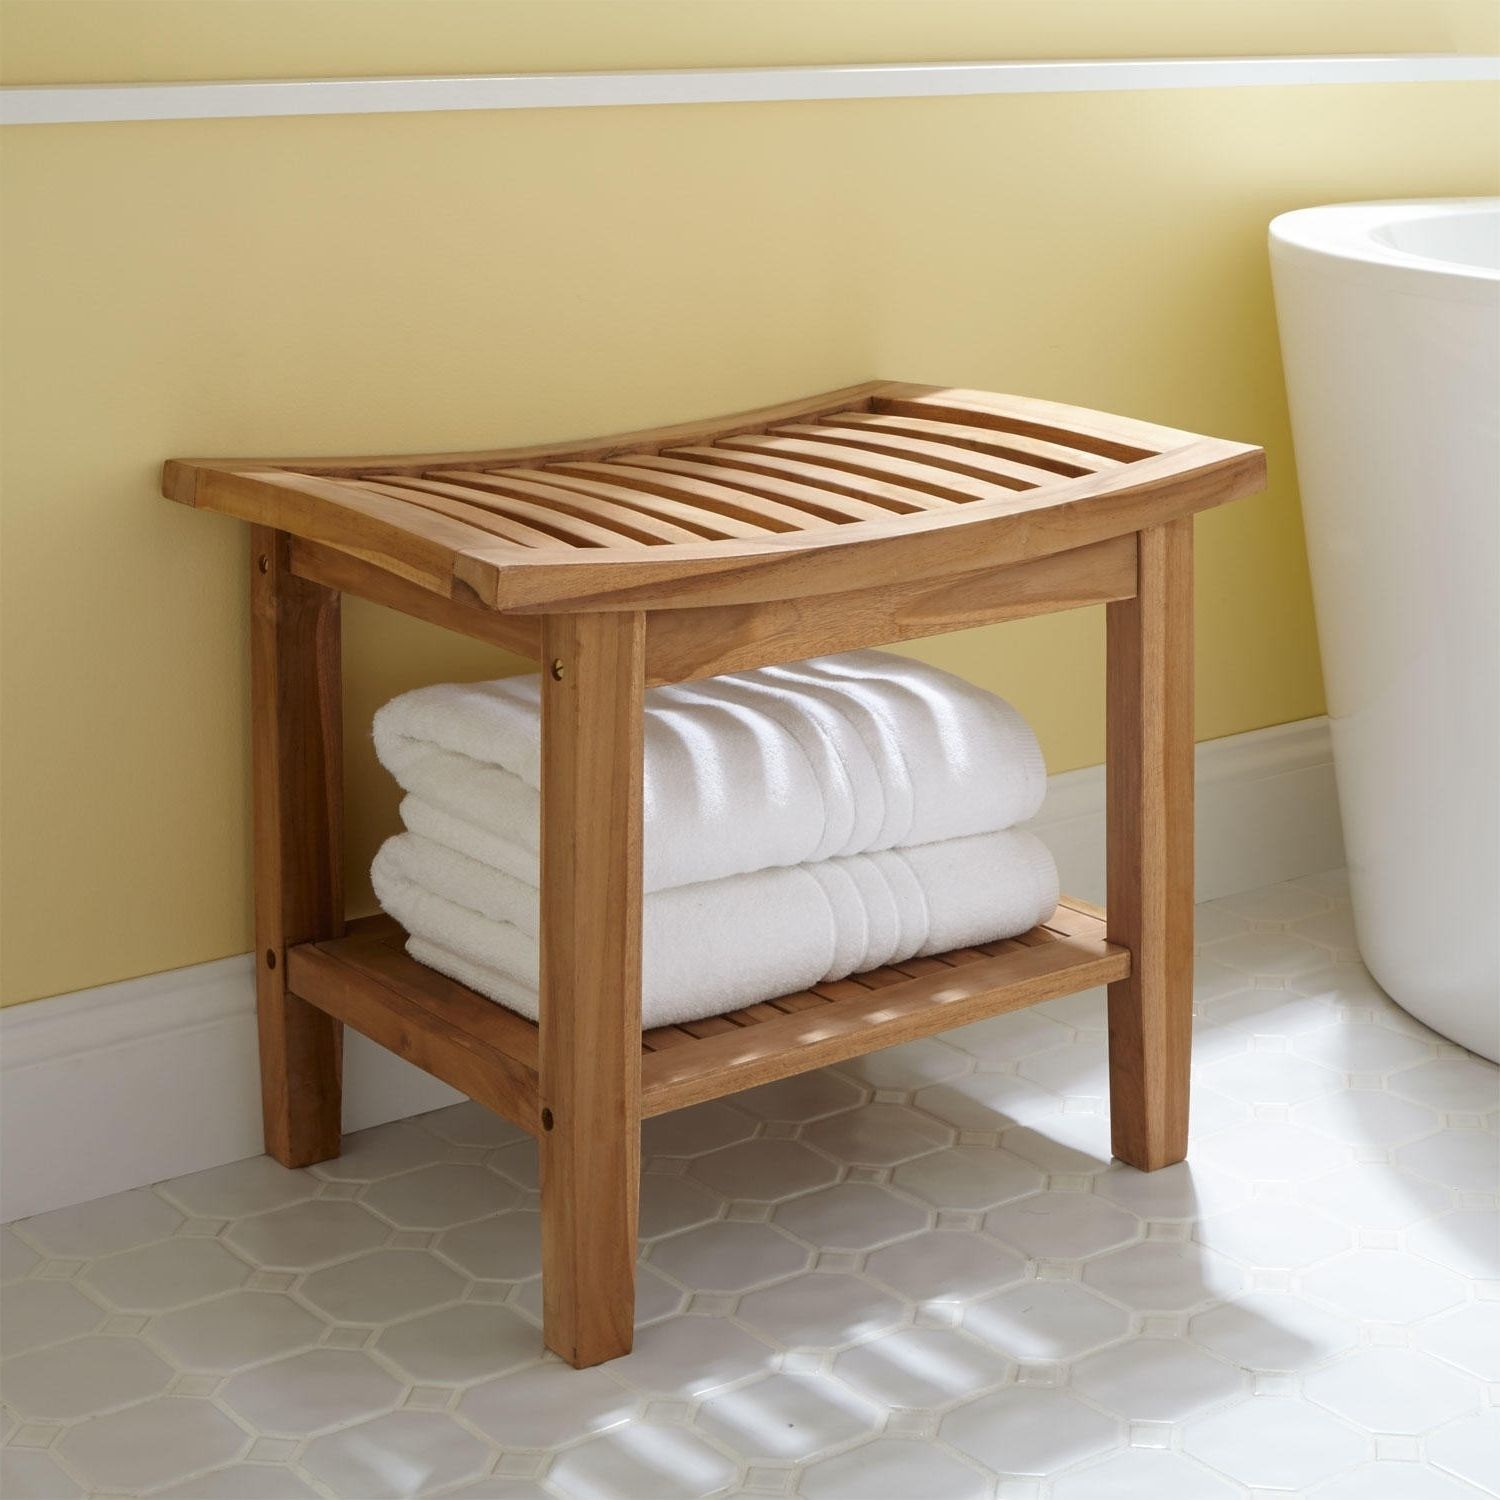 Bathroom : Unpolished Teak Wood Bathroom Stool With Open Shelf Towel ...